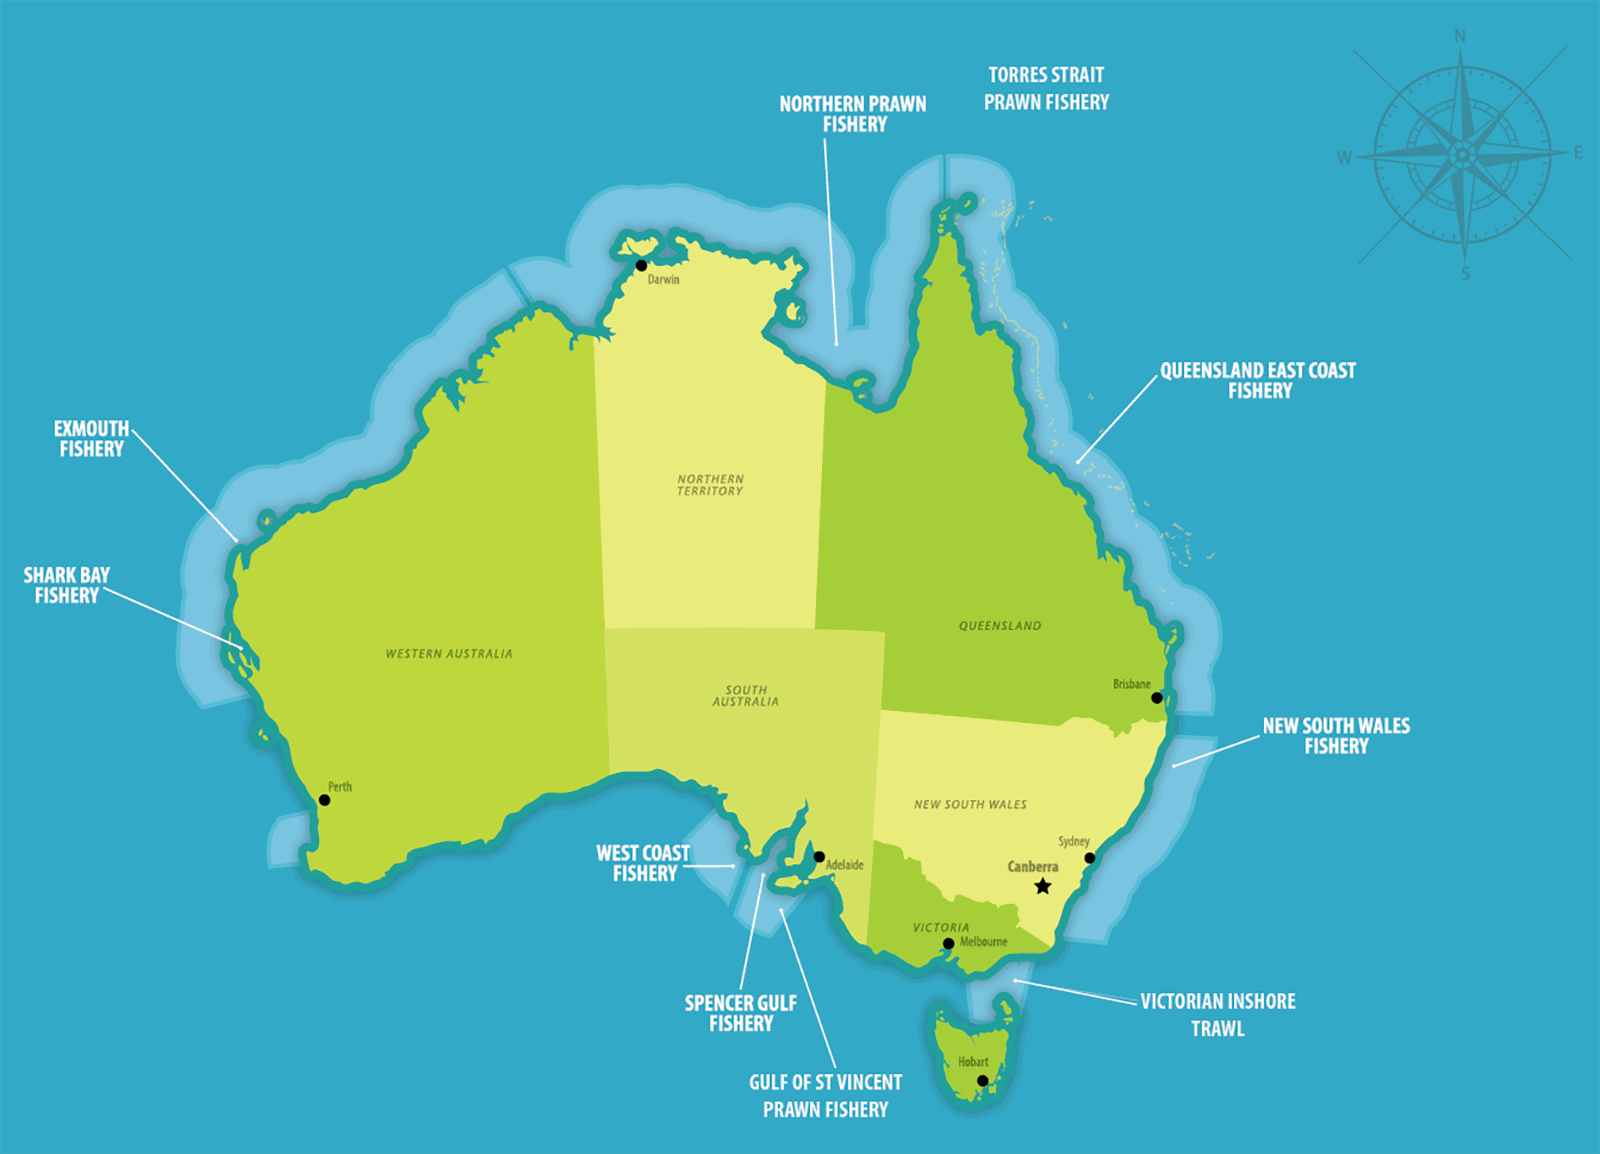 Australian Prawn Fisheries location map